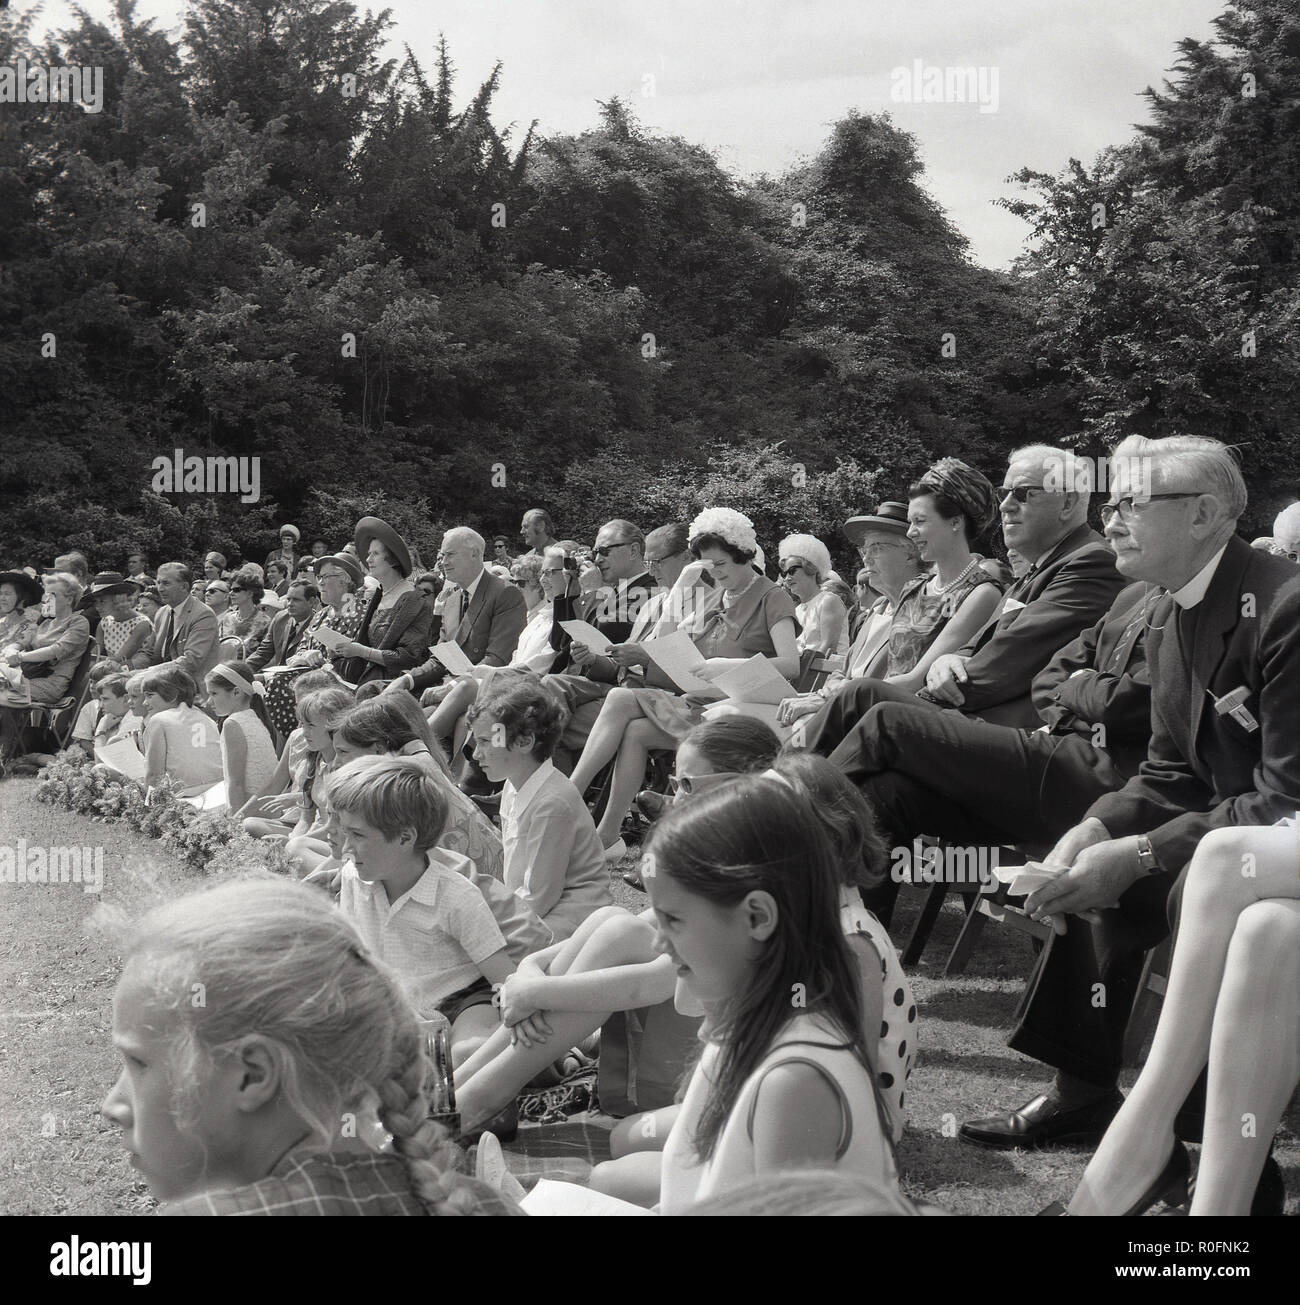 1967, picture shows a large group of spectators watching an event at the Tring Arts summer festival, Tring, Hertfordshire, England, UK. The festival was outdoors at Tring Park, the school for the Performing Arts, the home of the Arts Educational School. - Stock Image